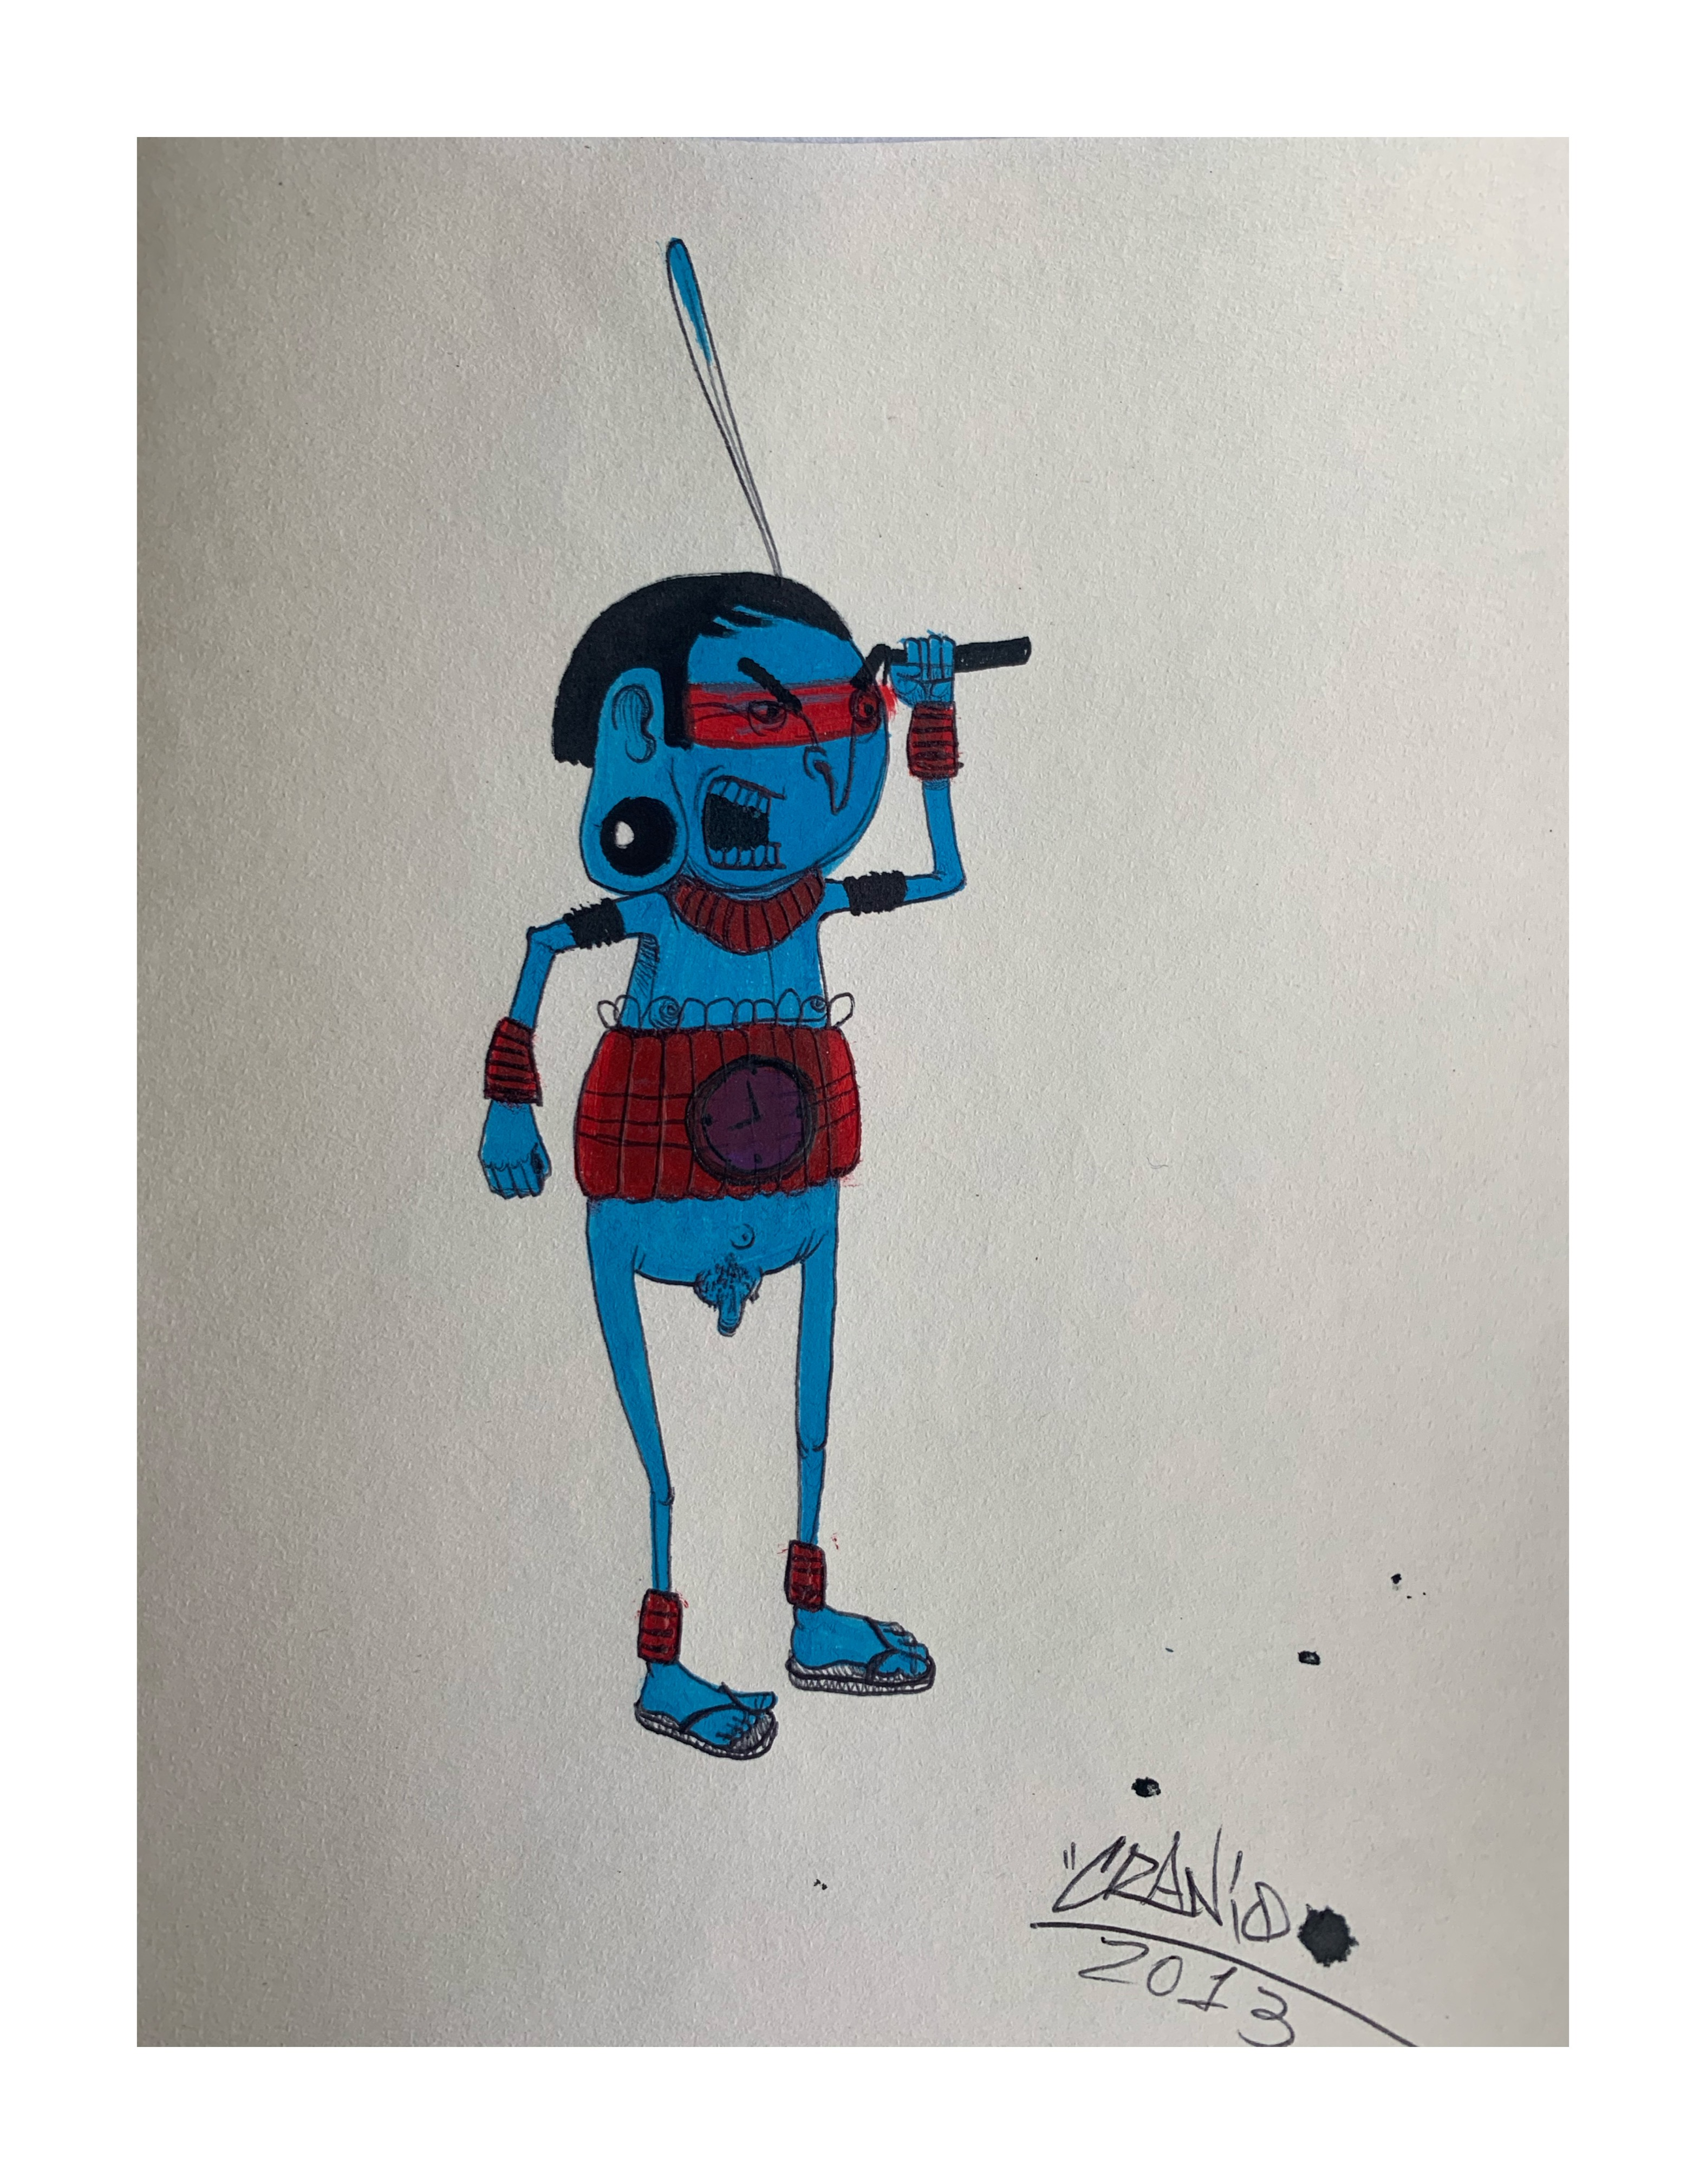 CRANIO , 'UNTITLED DOODLE' - 2013 , FROM THE PRIVATE COLLECTION OF PEZ - Image 2 of 3